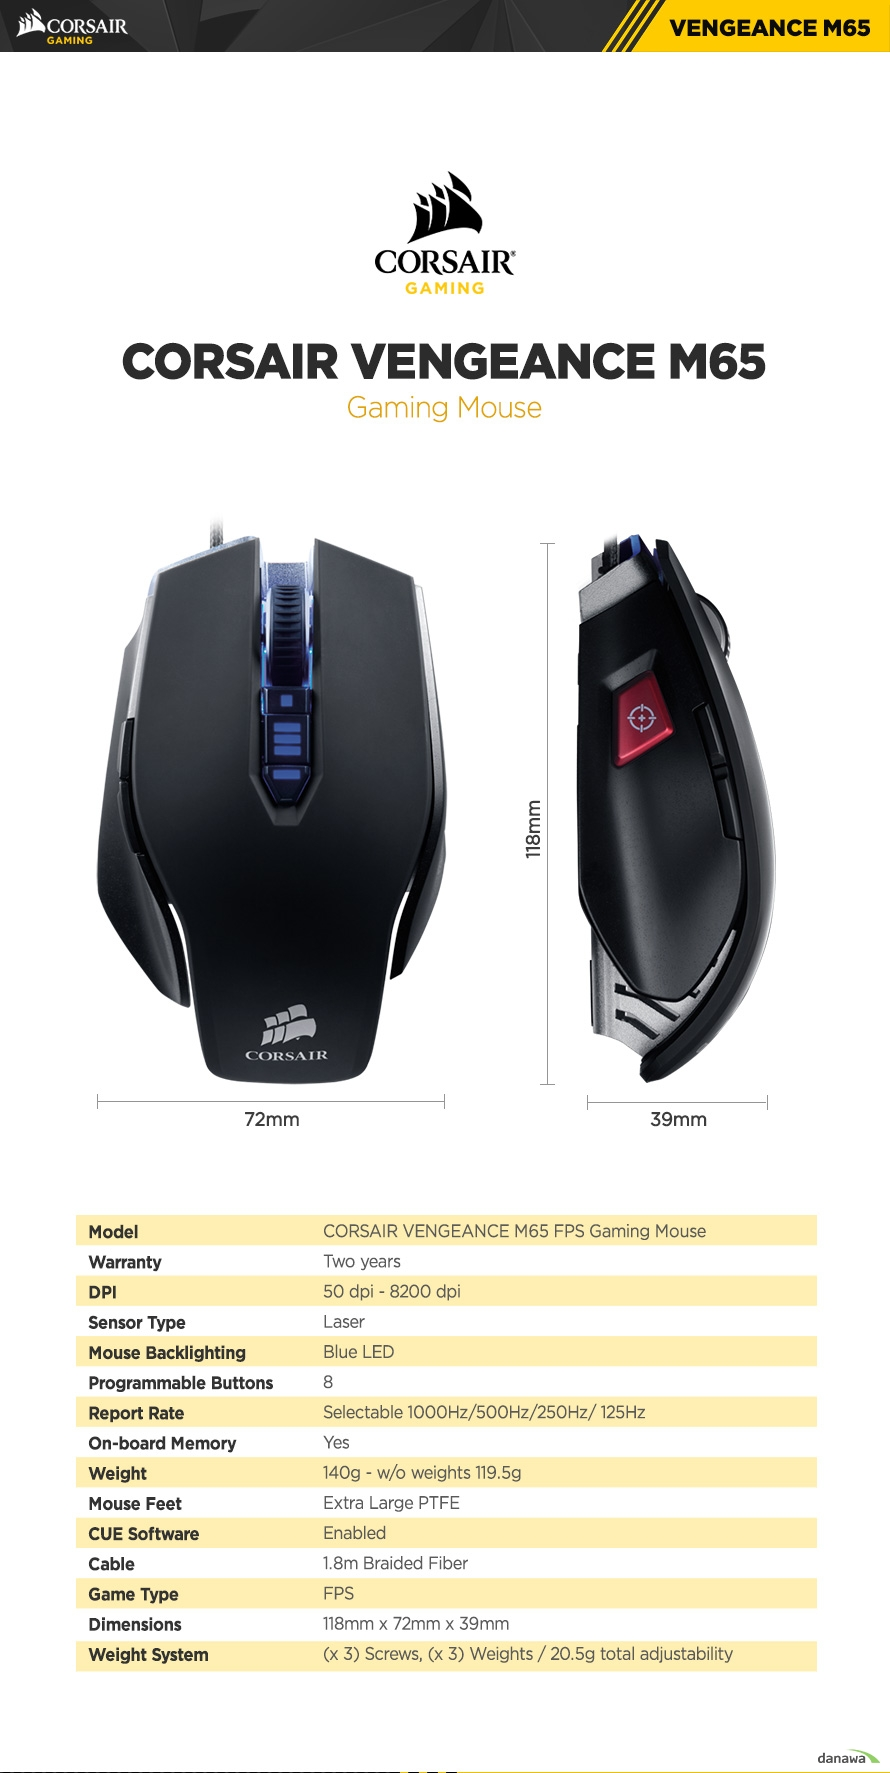 corsair vengeance M65 gaming mouse Warranty Two years DPI 50 dpi - 8200 dpi Sensor Type laser Mouse Backlighting LED  Programmable Buttons 8 Report Rate Selectable 1000Hz/500Hz/250Hz/125hz On-board Memory Yes Weight 135.5g - w/o weights 115g Mouse Feet Extra Large PTFE CUE Software Enabled Cable 1.8m Braided Fiber Game Type FPS  Dimensions 118mm x 72mm x 39mm Weight System (x 3) Screws, (x 3) Weights 20.5g total adjustability